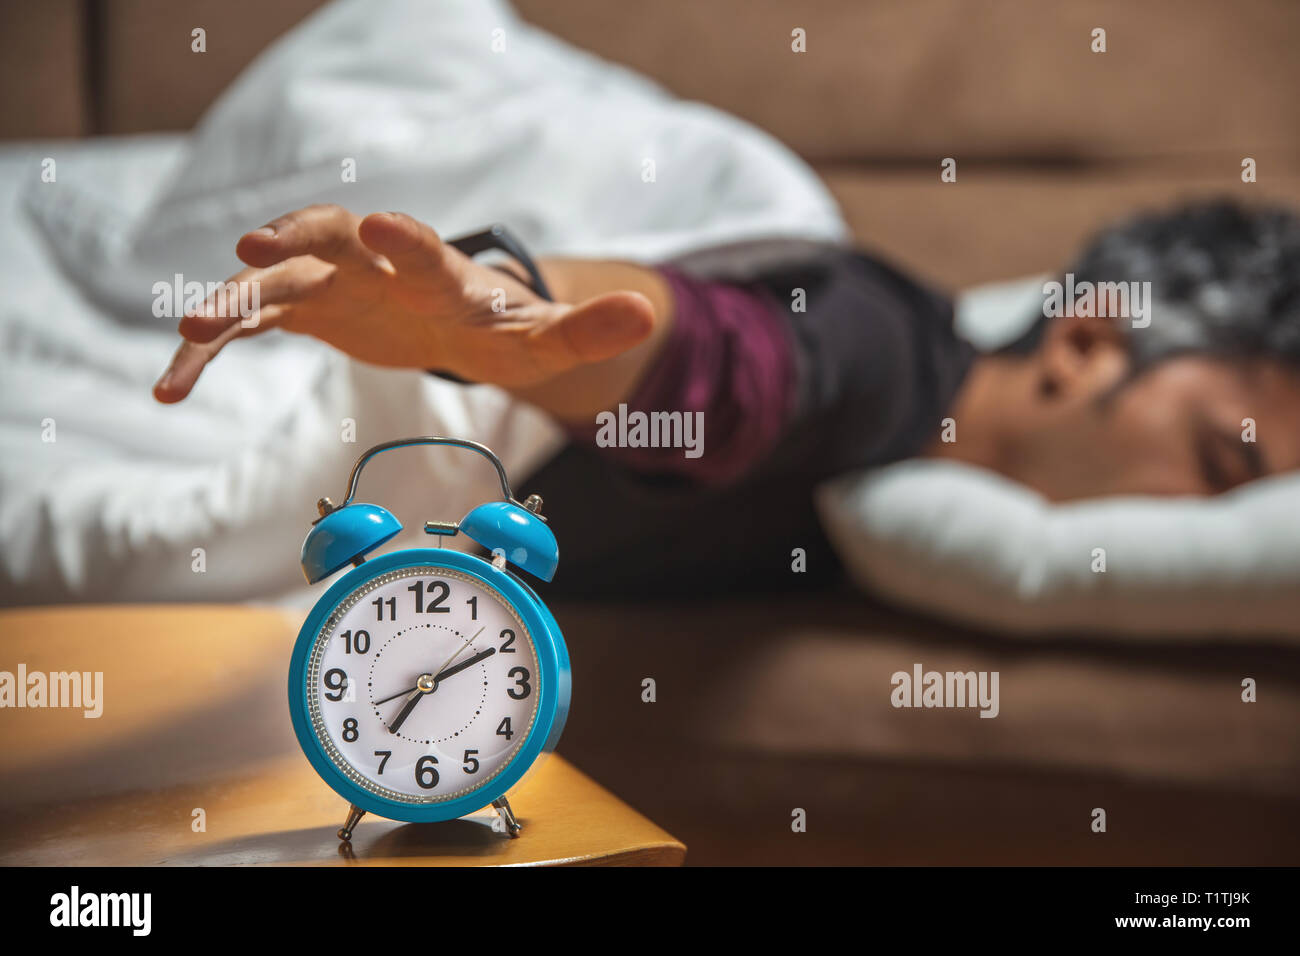 close up view of a sleepy guy trying to snooze a vintage clock - Stock Image